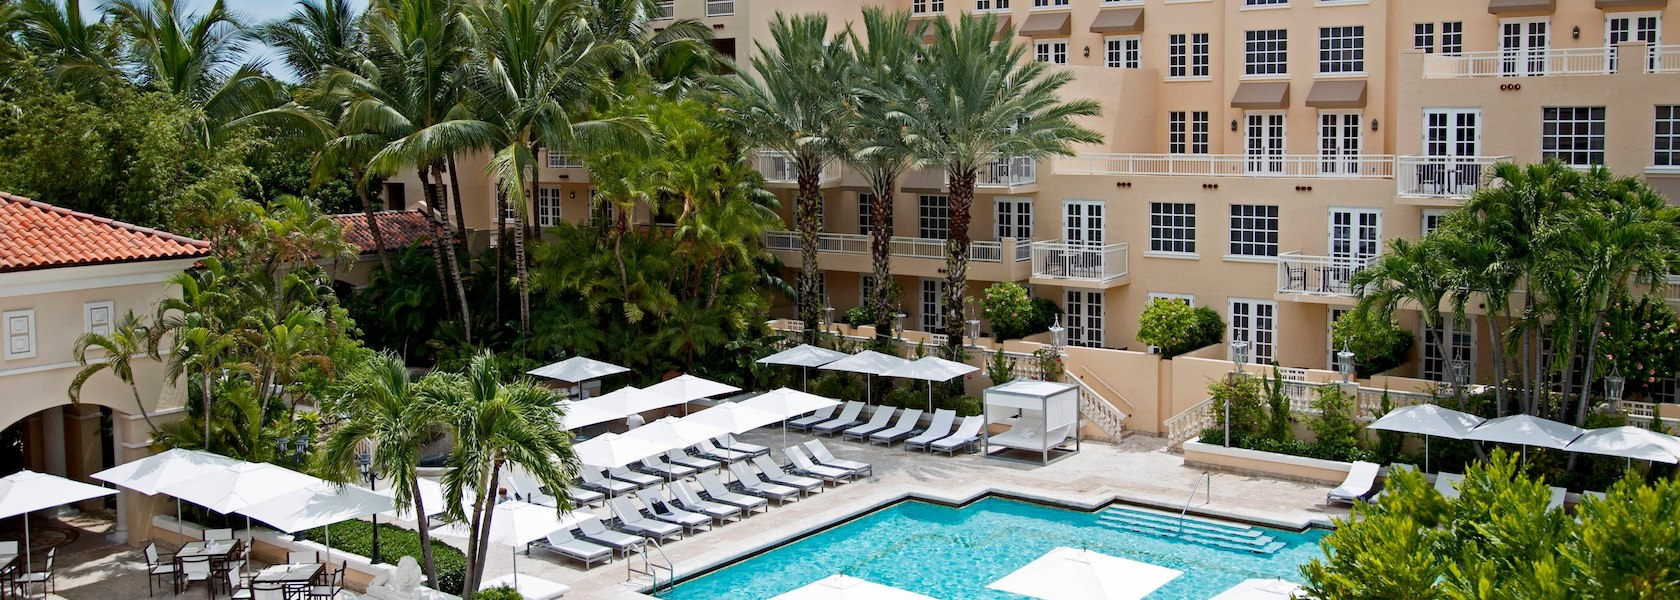 Pool and lounge chairs at the JW Marriott Turnberry Isle